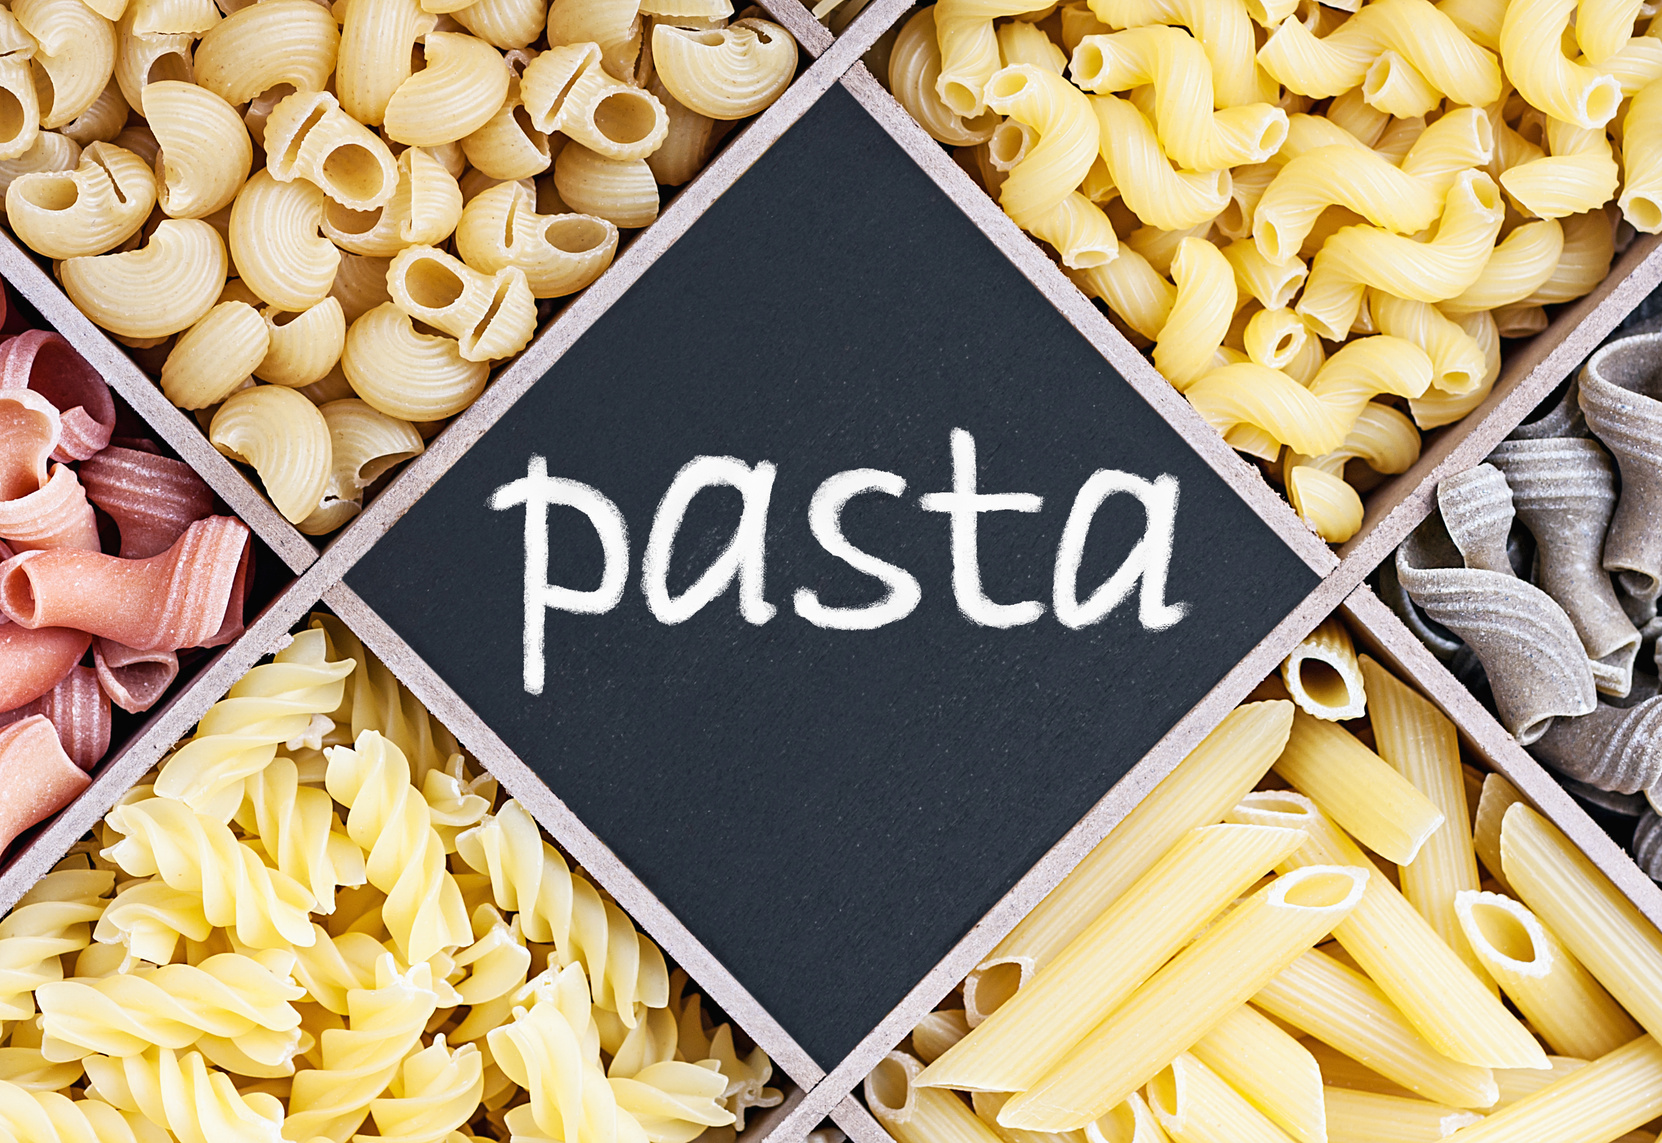 pasta assortment and blackboard with text